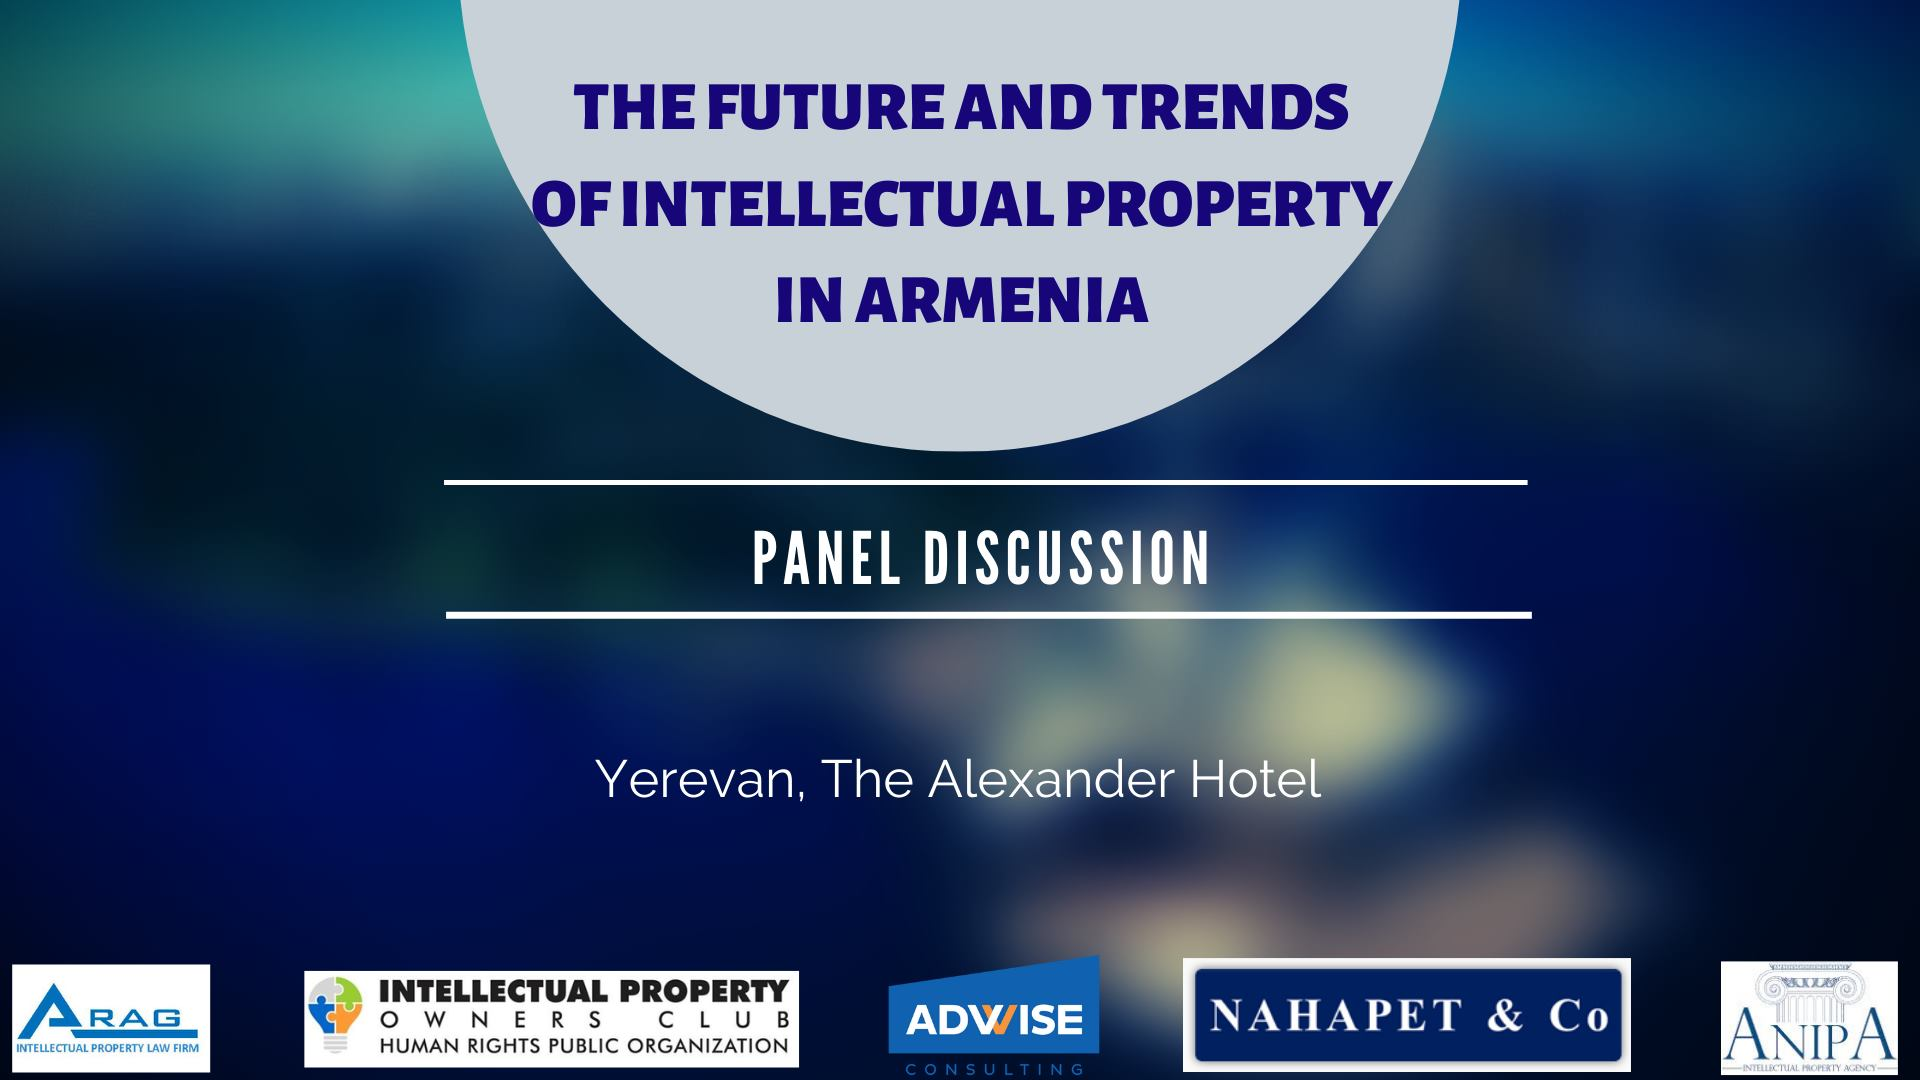 The Future and Trends of Intellectual Property in Armenia